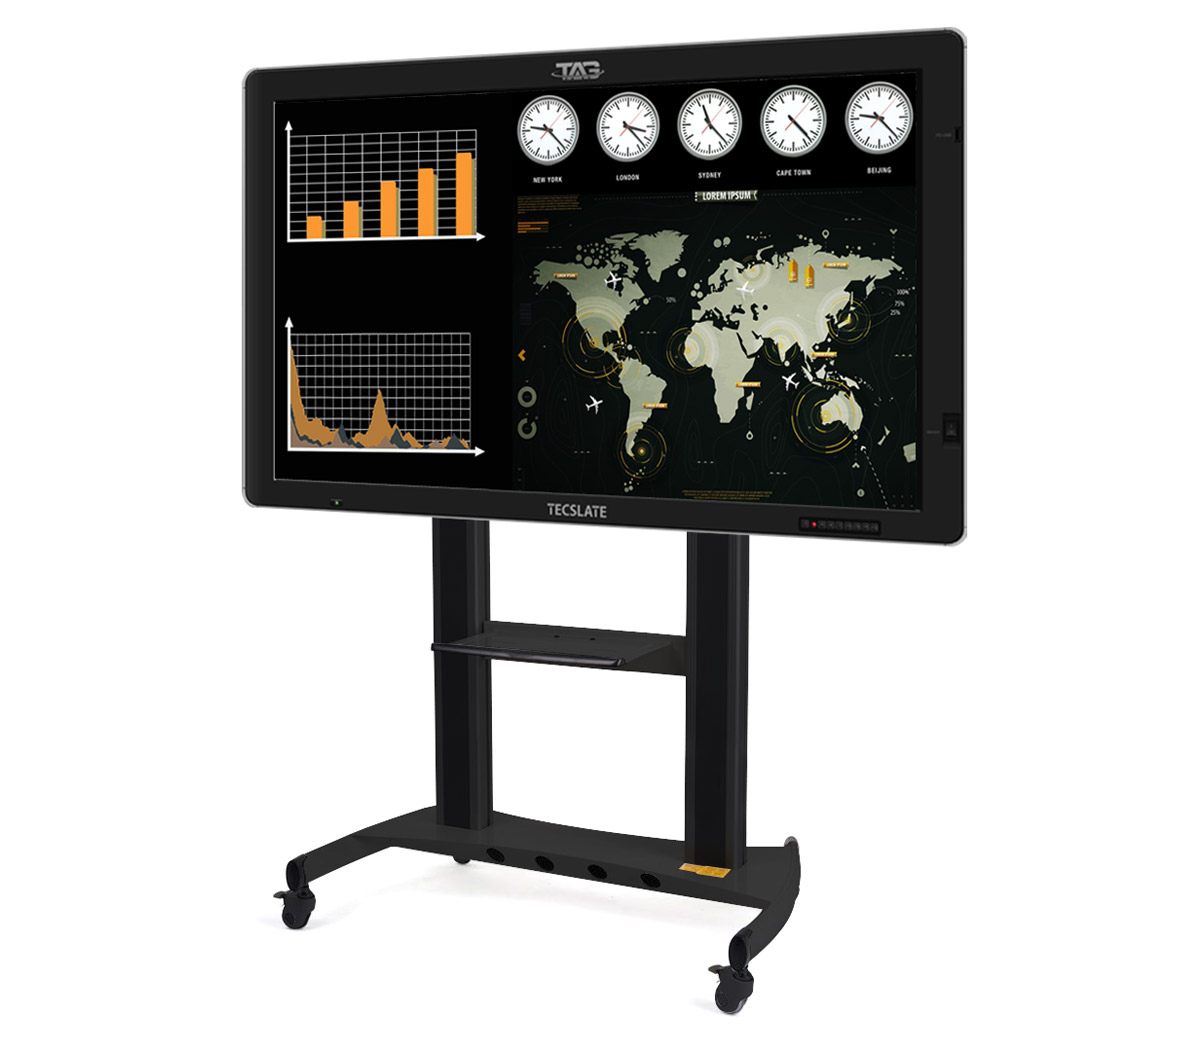 TAG Global Systems produces the TAG TECSLATE, a collaborative and interactive touchscreen flat panel computer